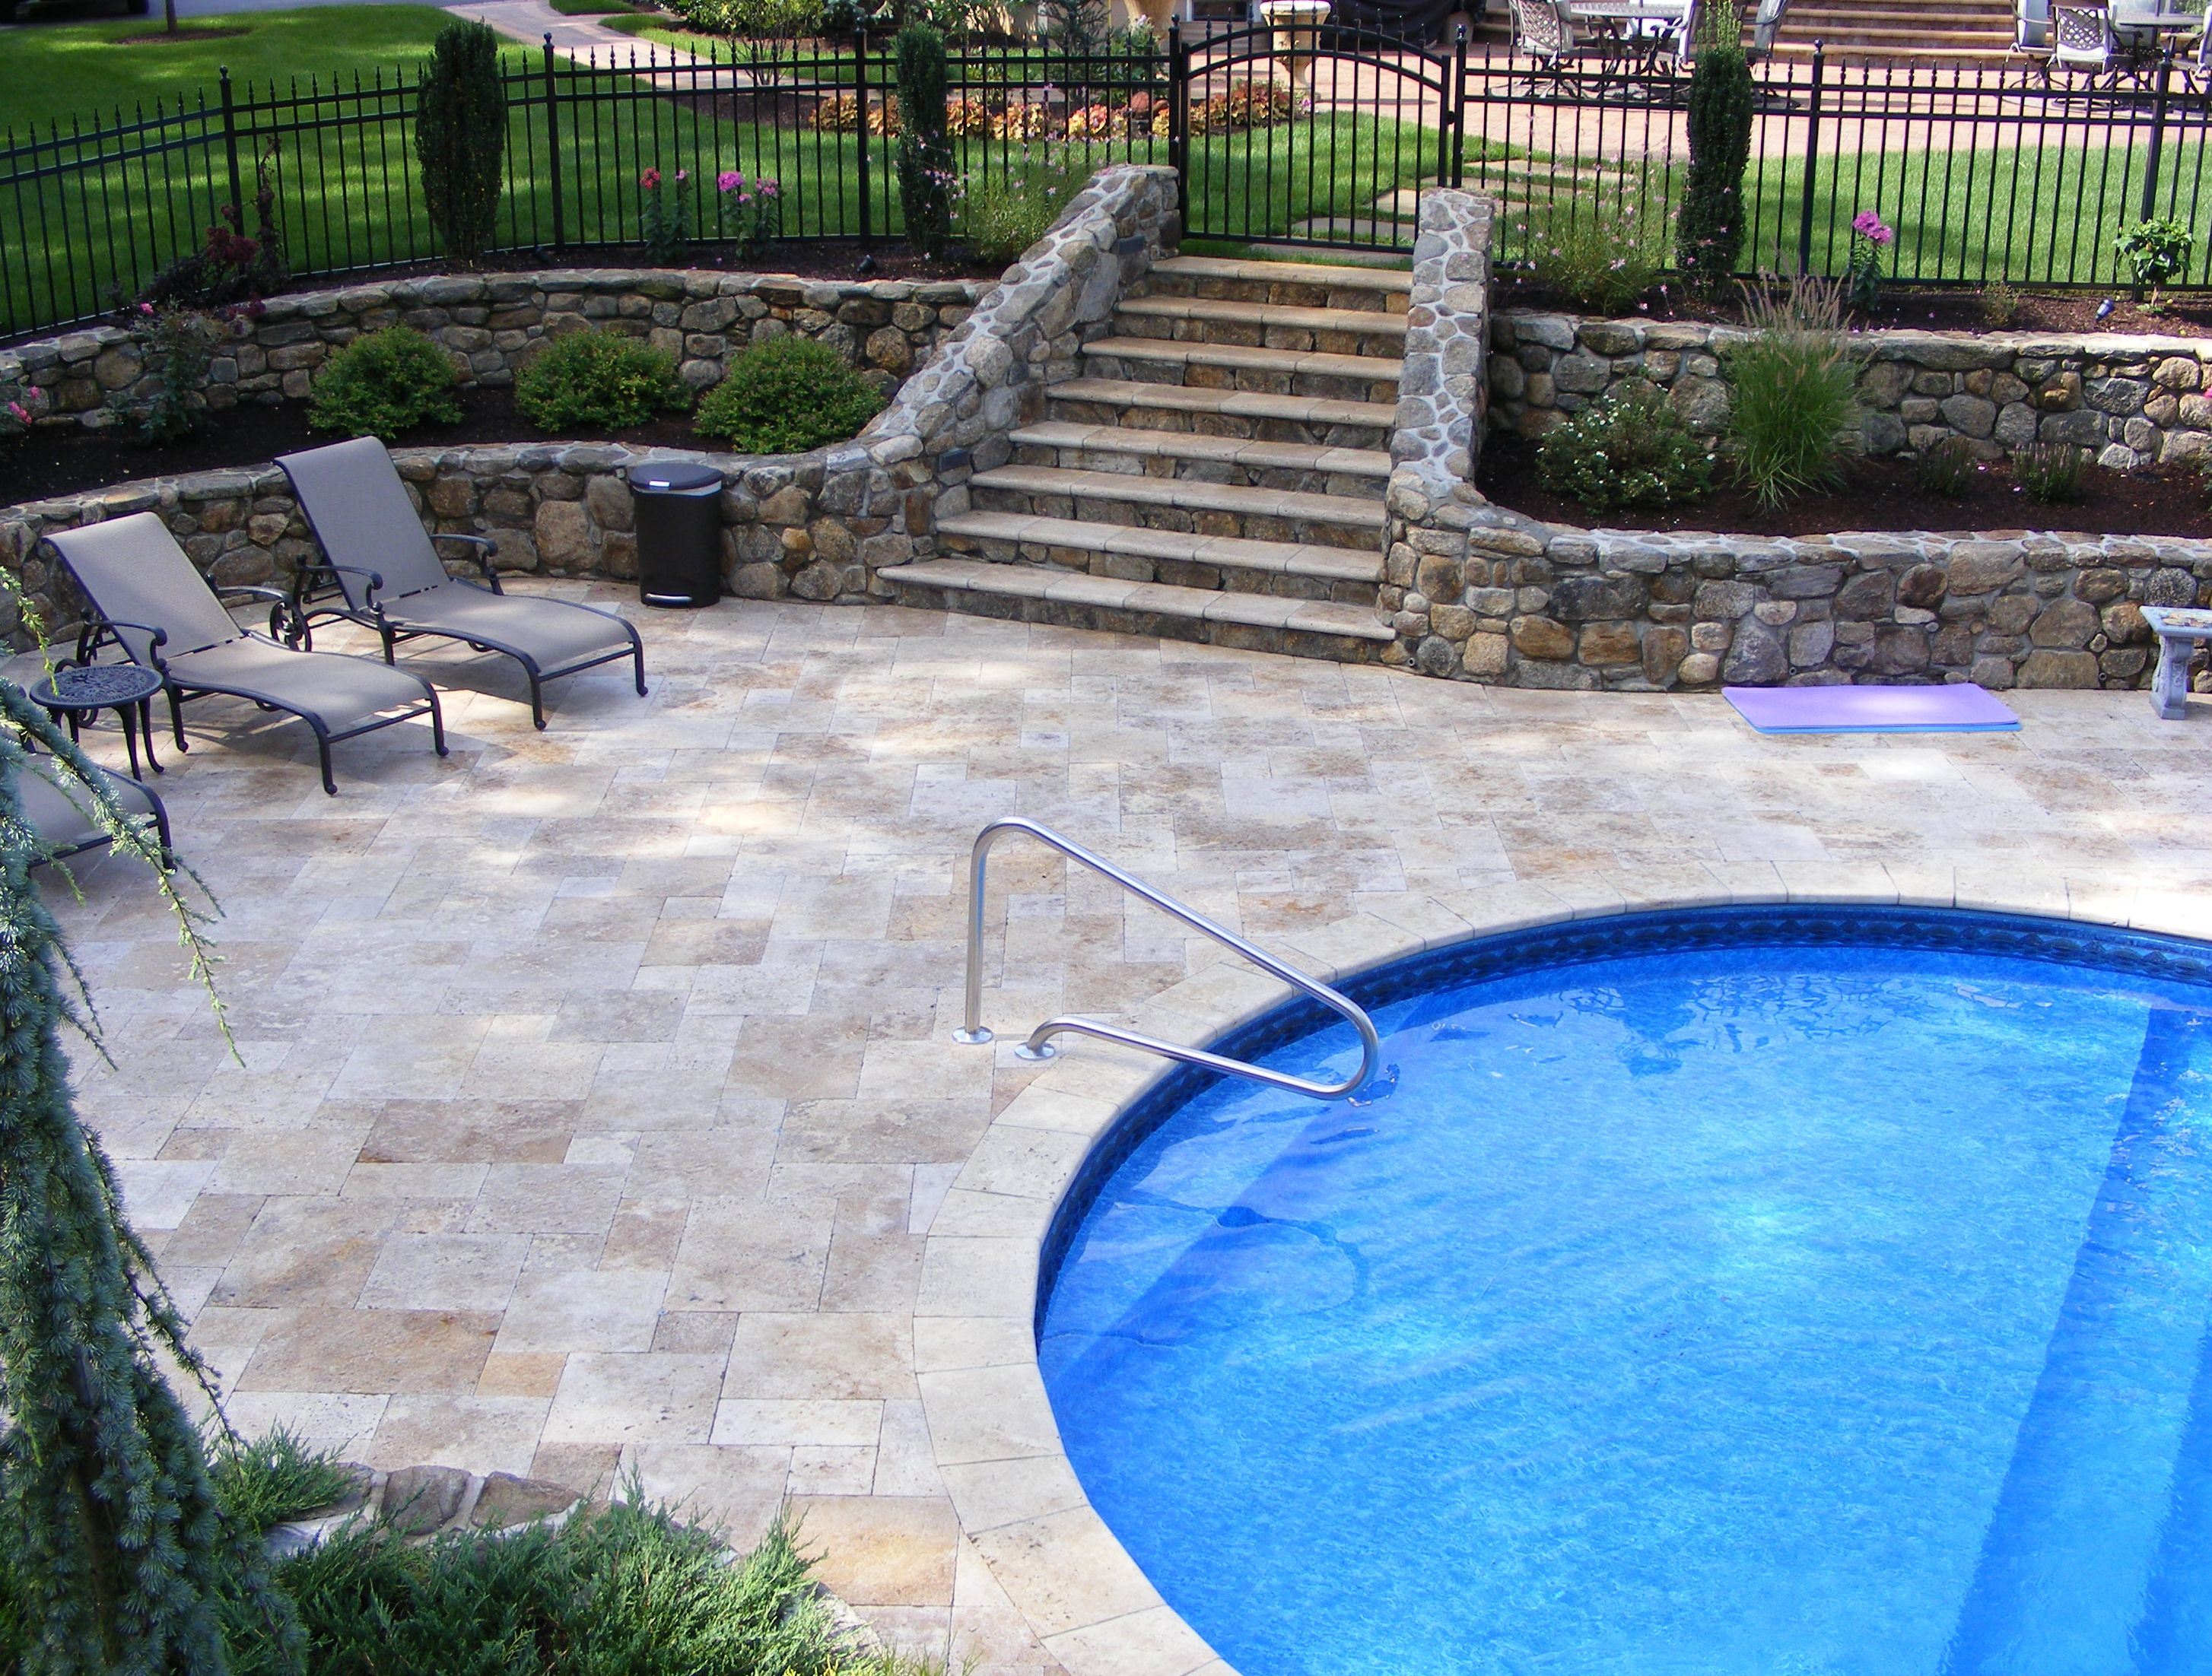 Falling in Love with Travertine Pavers Pool Deck - HomesFeed on Pool Deck Patio Ideas  id=56331